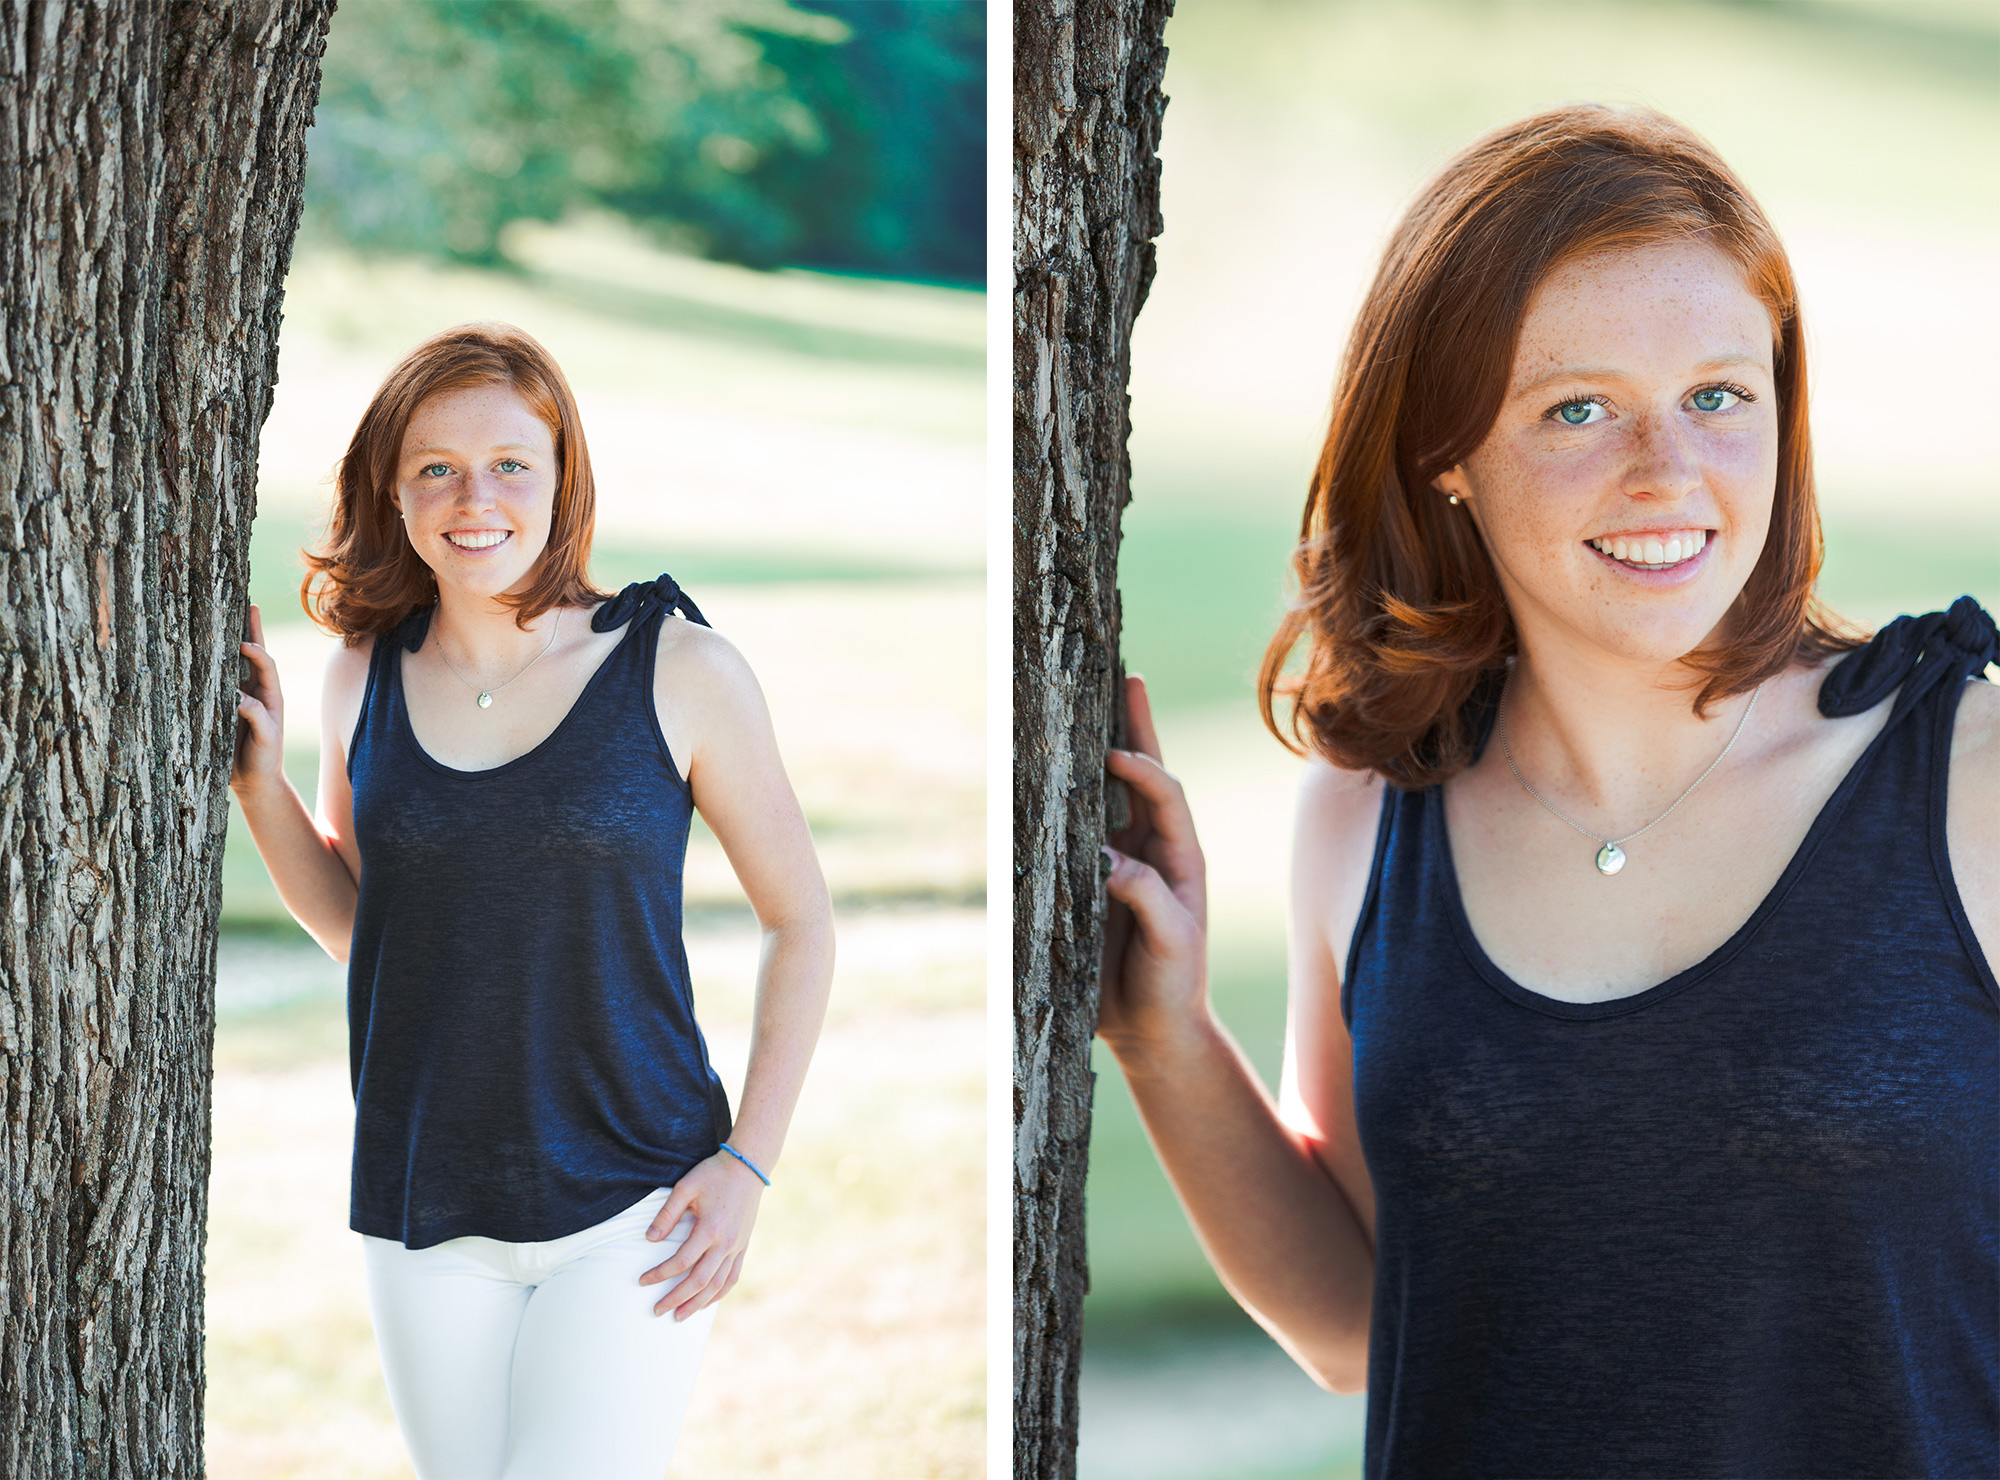 Maudslay Park Senior Portrait Photographer | Stephen Grant Photography